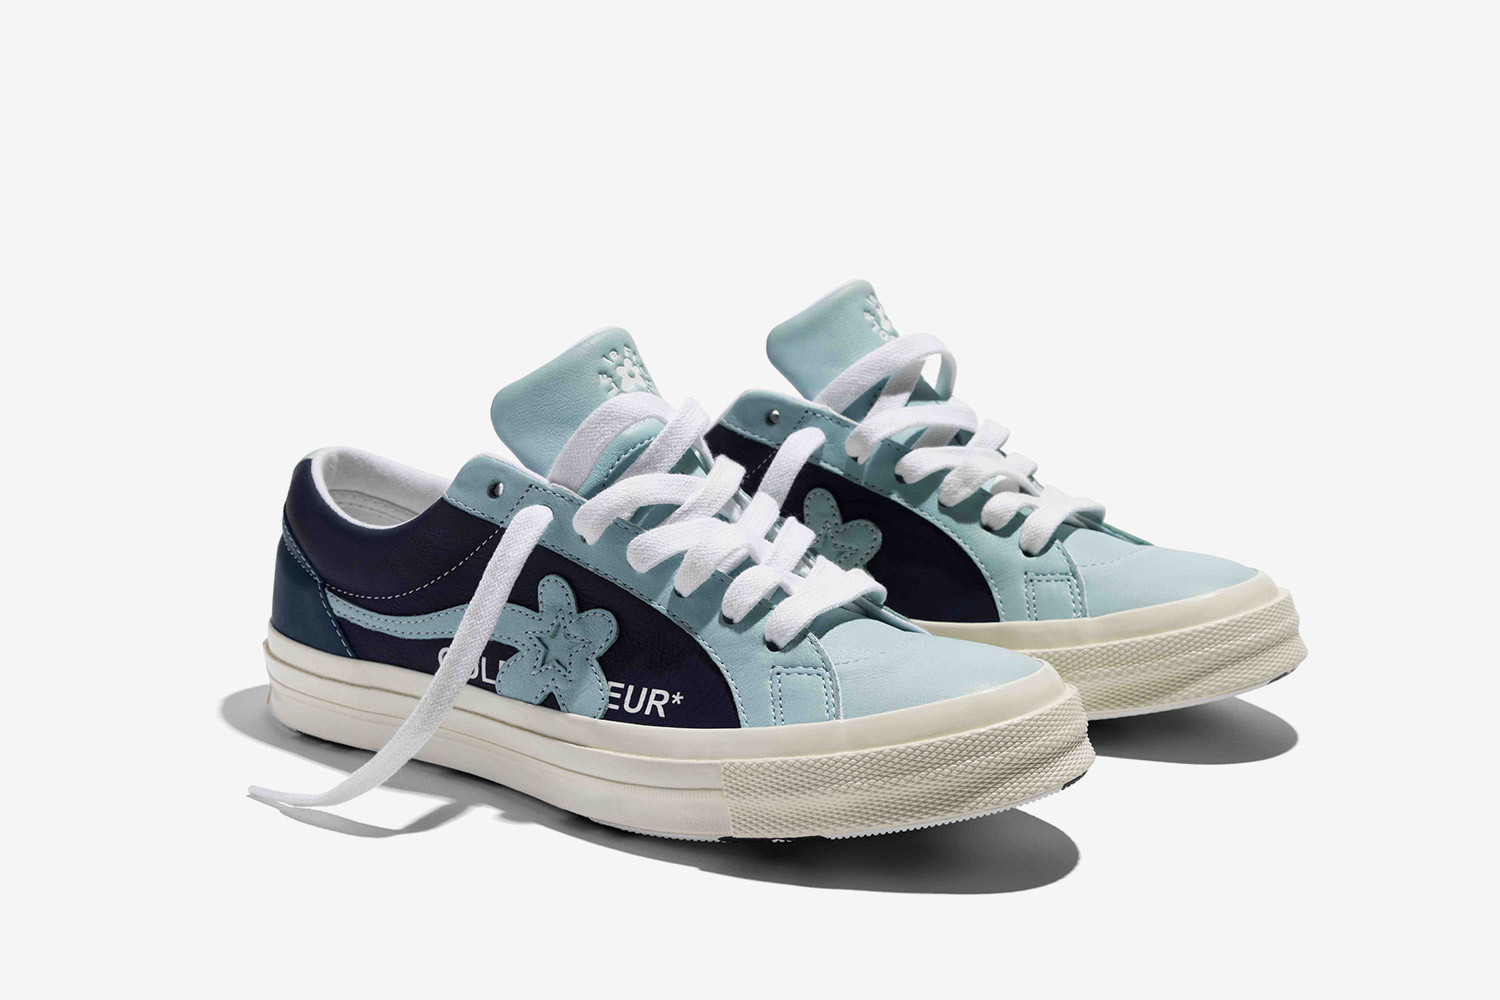 converse-golf-le-fleur-low-top-coming-soon-4